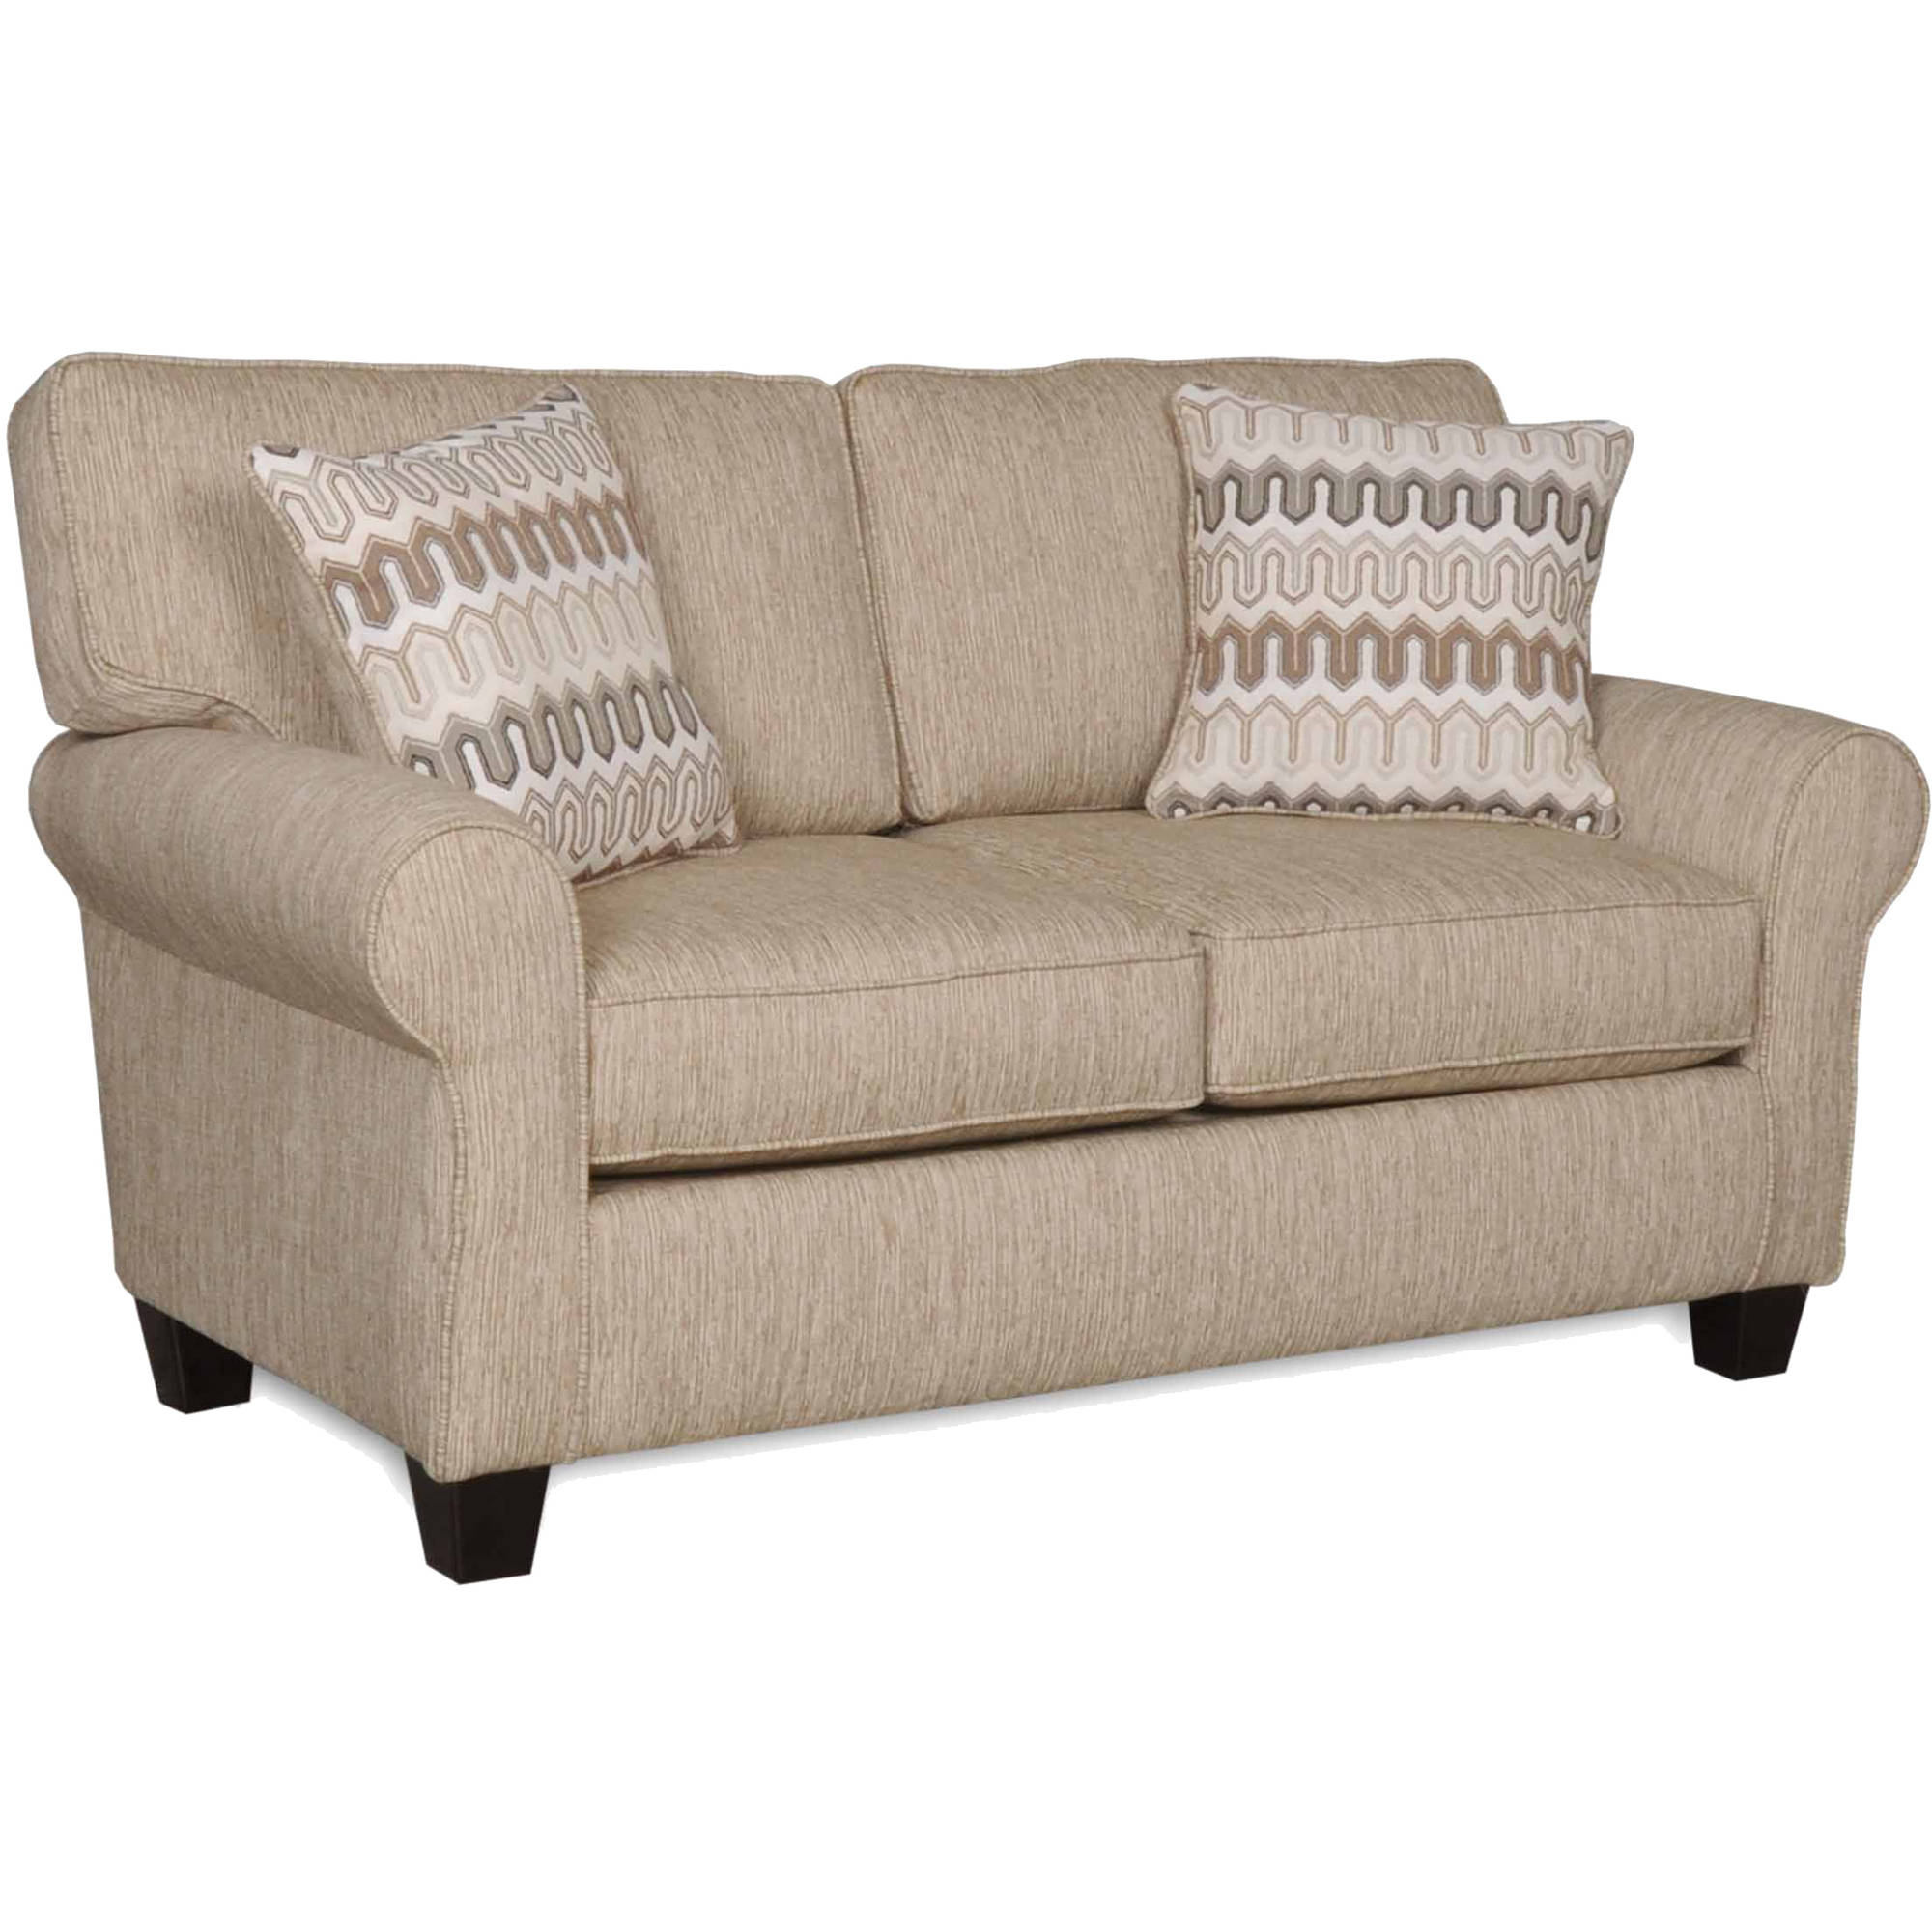 SoFab Erin Cafe Almond Love Seat with 2 Reversible Accent Pillows